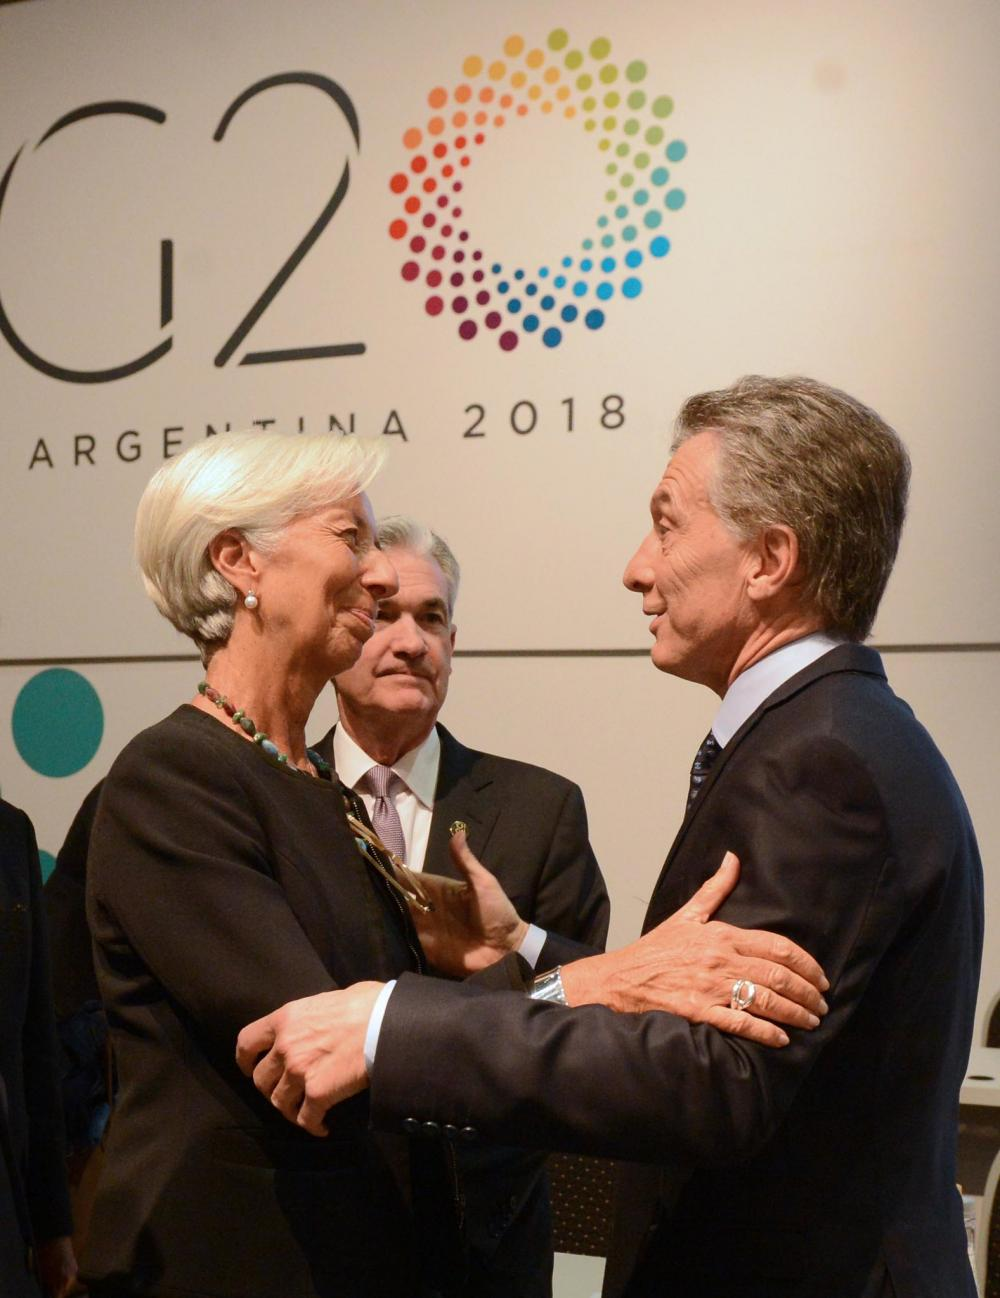 IMF Managing Director Christine Lagarde and Argentine President Mauricio Macri at the G20 summit in Argentina, 2018. CREDIT: G20 Argentina (CC BY 2.0)